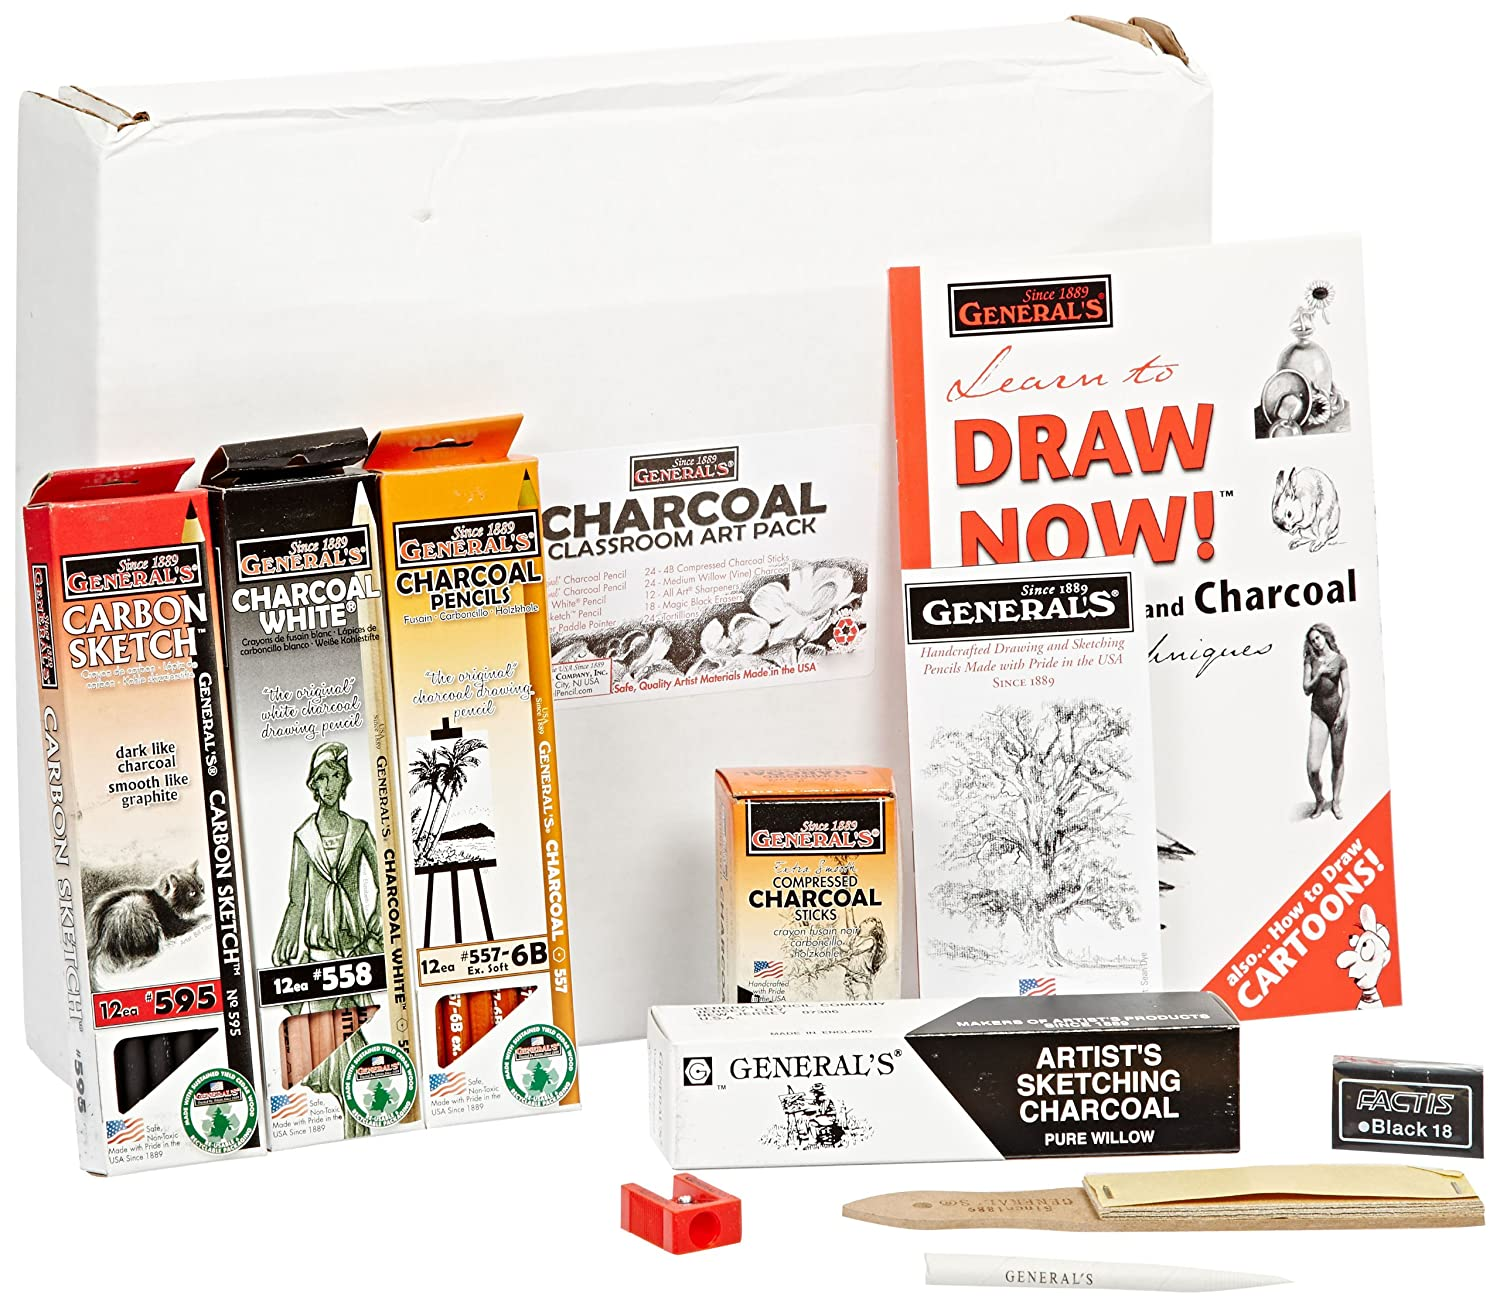 Image of Charcoals General's Charcoal Drawing School Pack